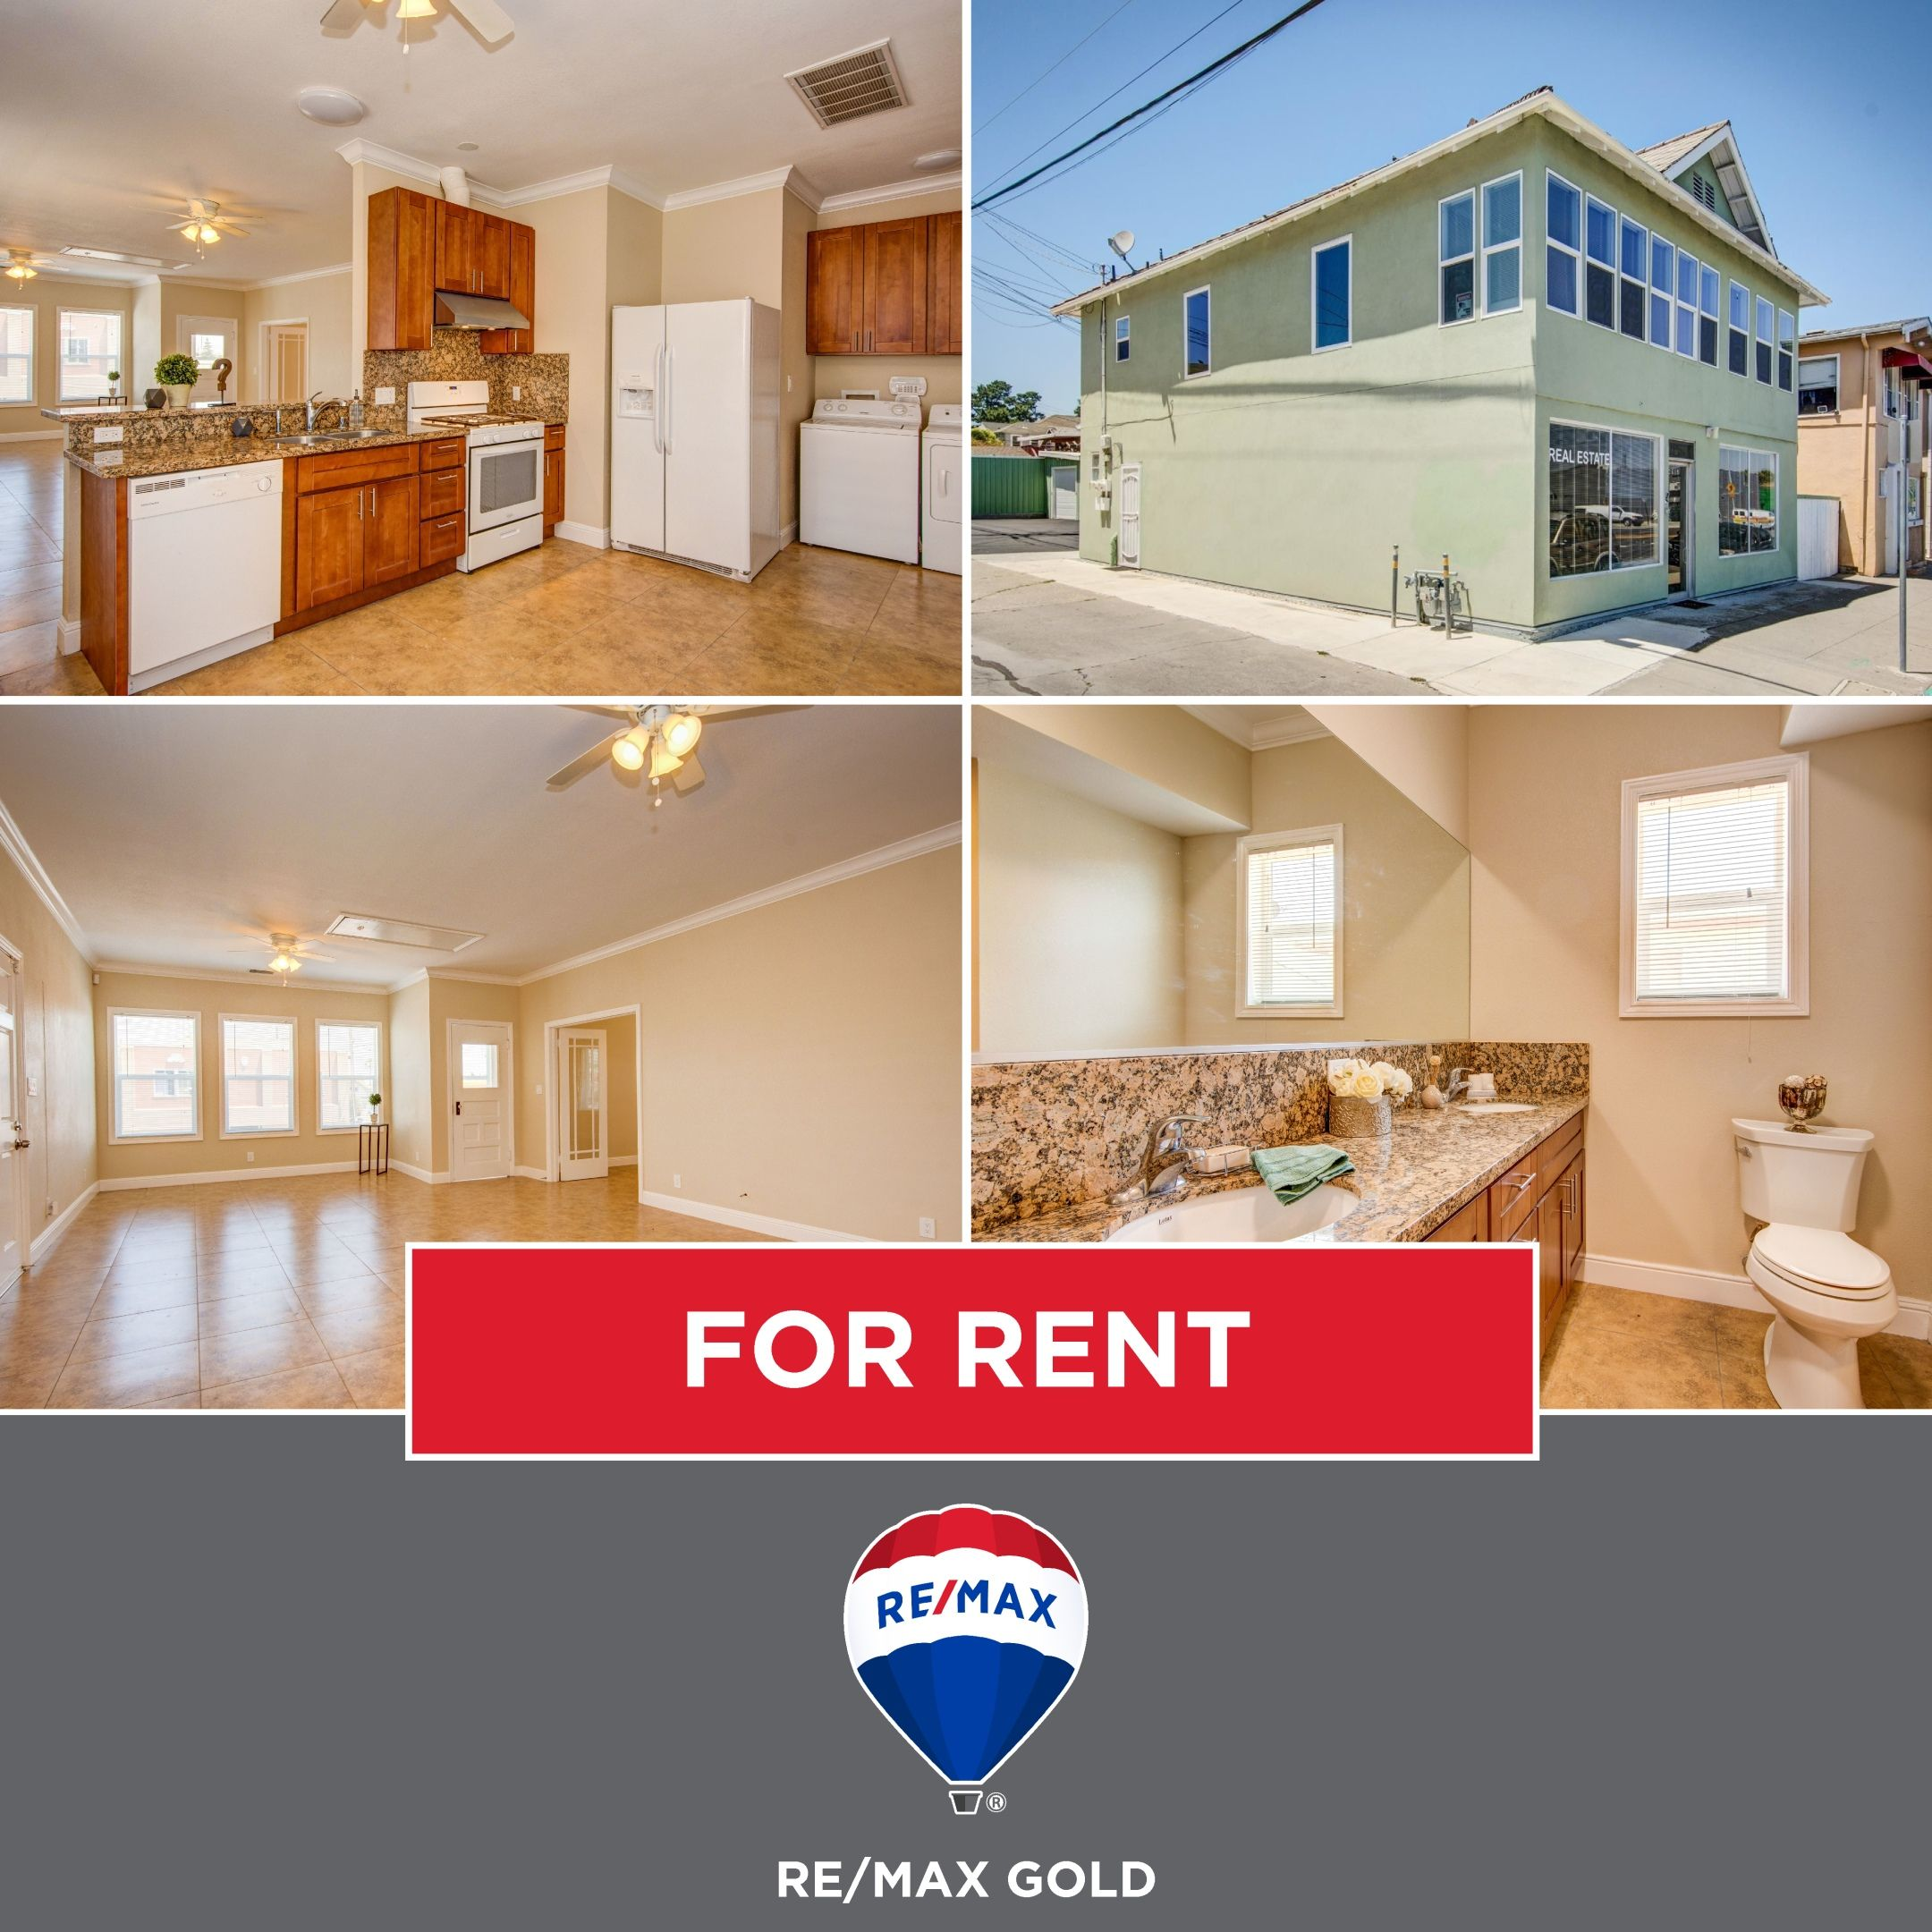 2 Bedroom Vallejo Apartment For Rent Rent Apartments For Rent Bathroom Size